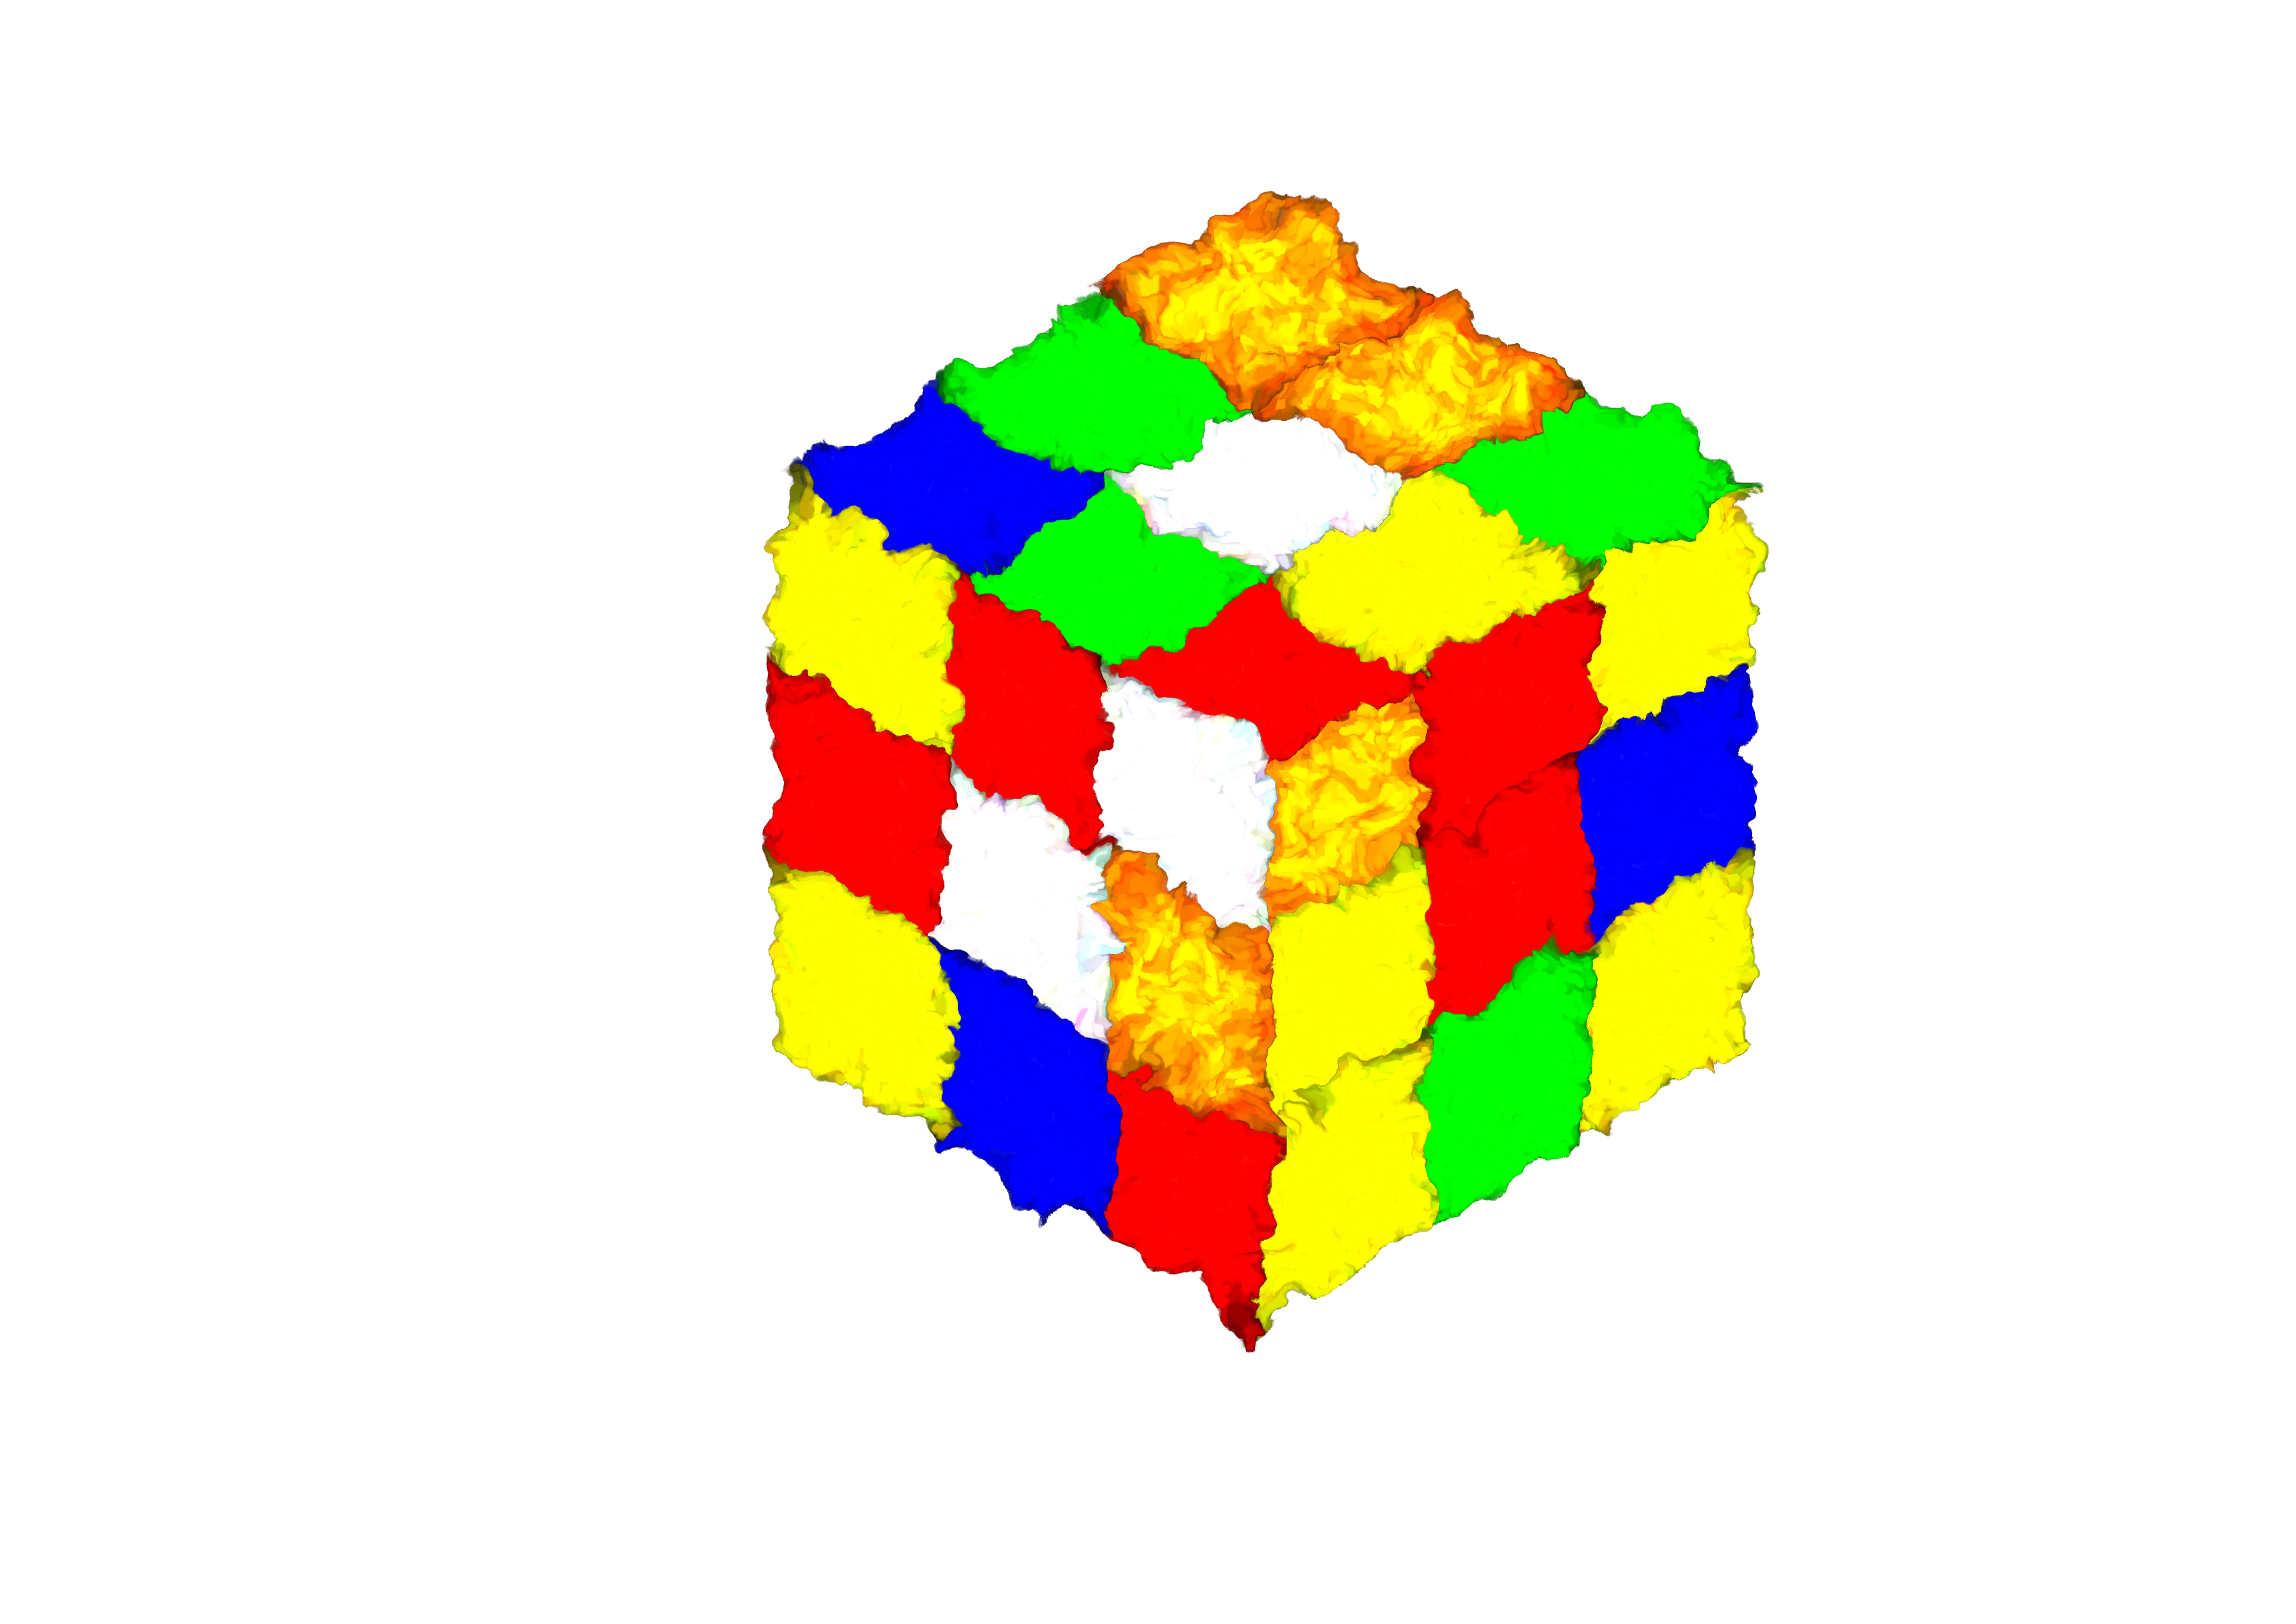 Rubiks cube remix by jimmyboy99